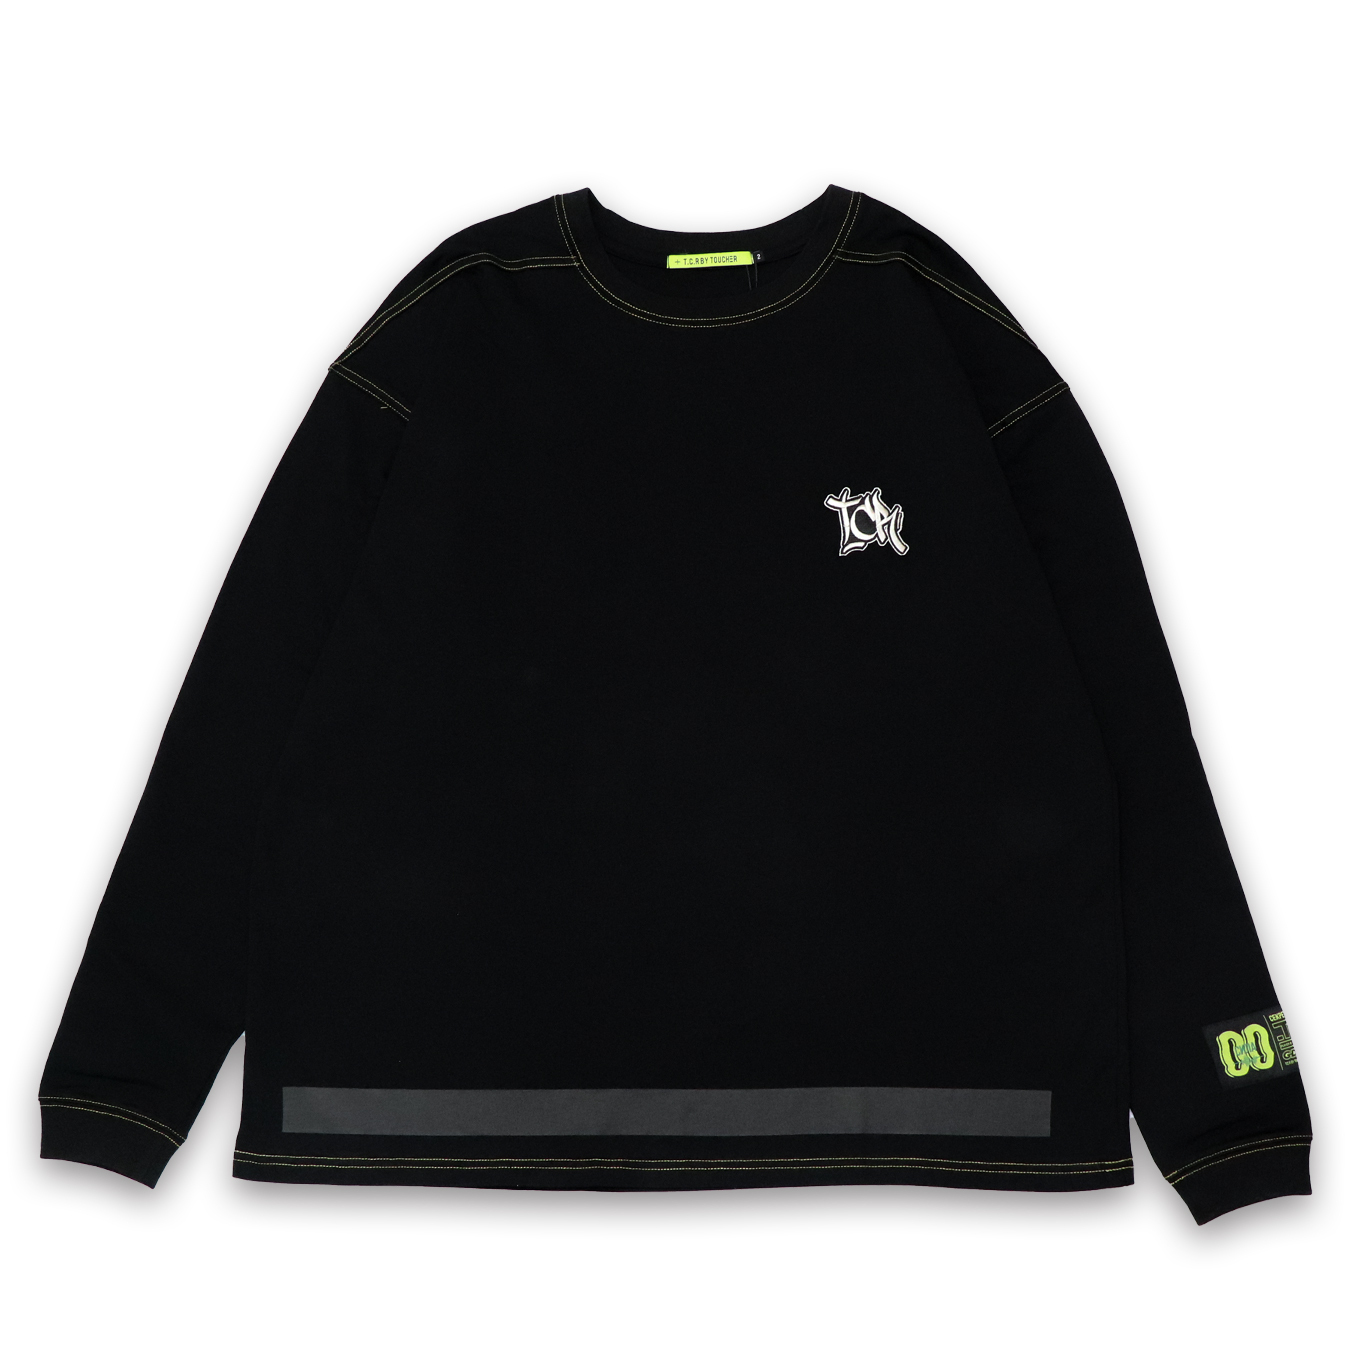 T.C.R EMBROIDERY LOGO L/S TEE - BLACK/YELLOW